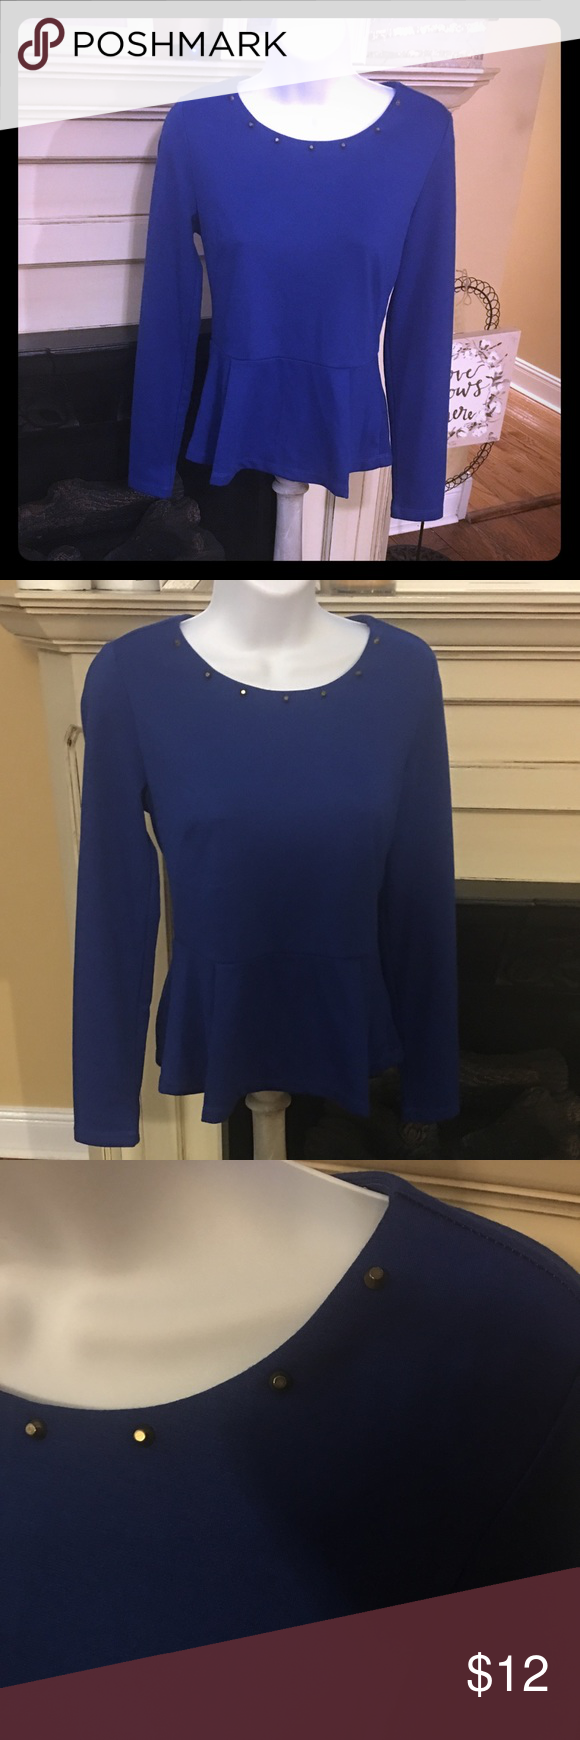 Ponte Knit Peplum Top Gorgeous hue of blue. Perfect condition. This piece is so elegant it looks like it belongs in a high end boutique. Zipper in back. Perfectly placed pleats at the ruffle Forever 21 Tops Blouses